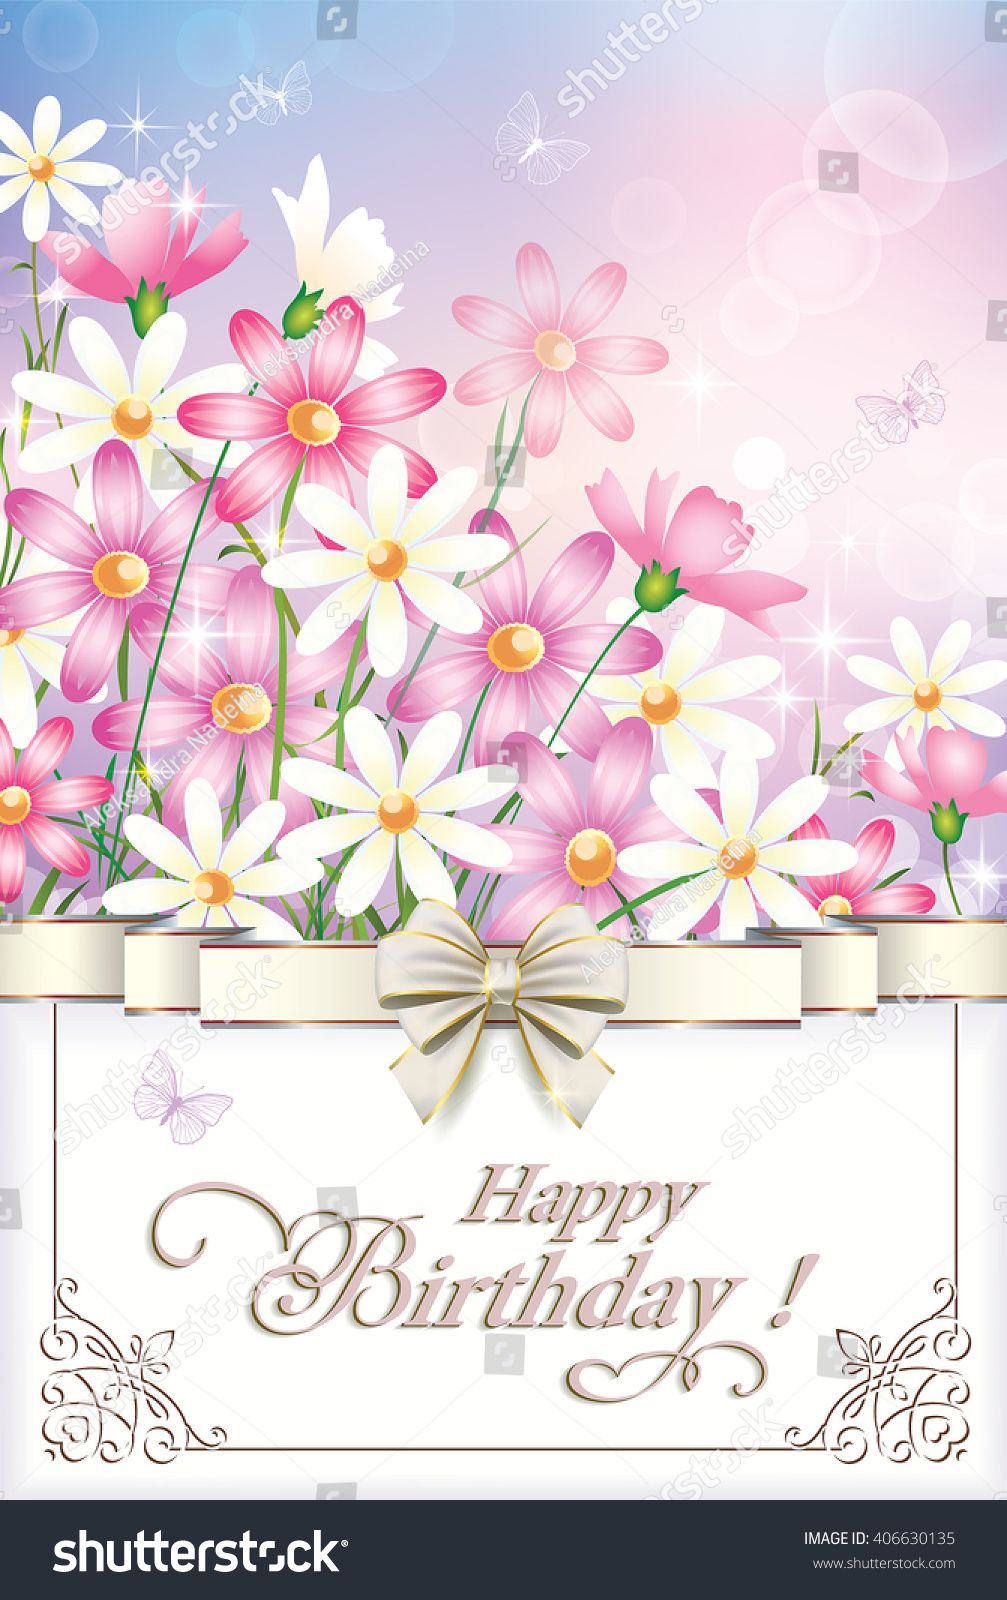 Greeting Card Happy Birthday Flowers Frame Stock Vector Royalty